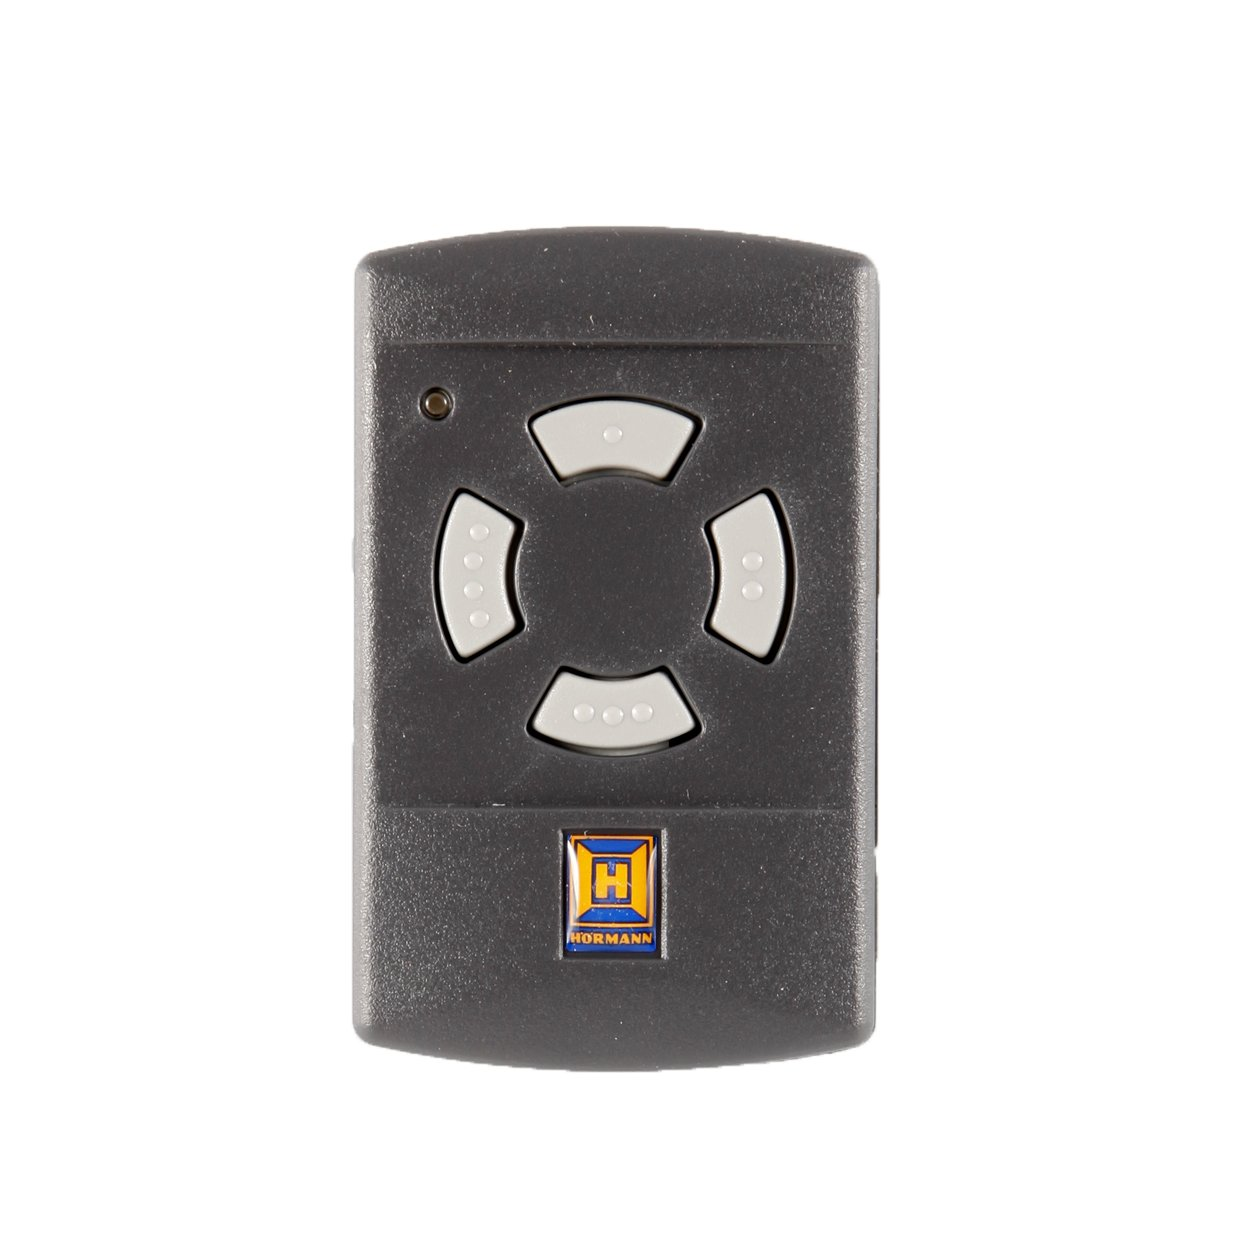 Hormann HSM4 Grey | Garage door remote